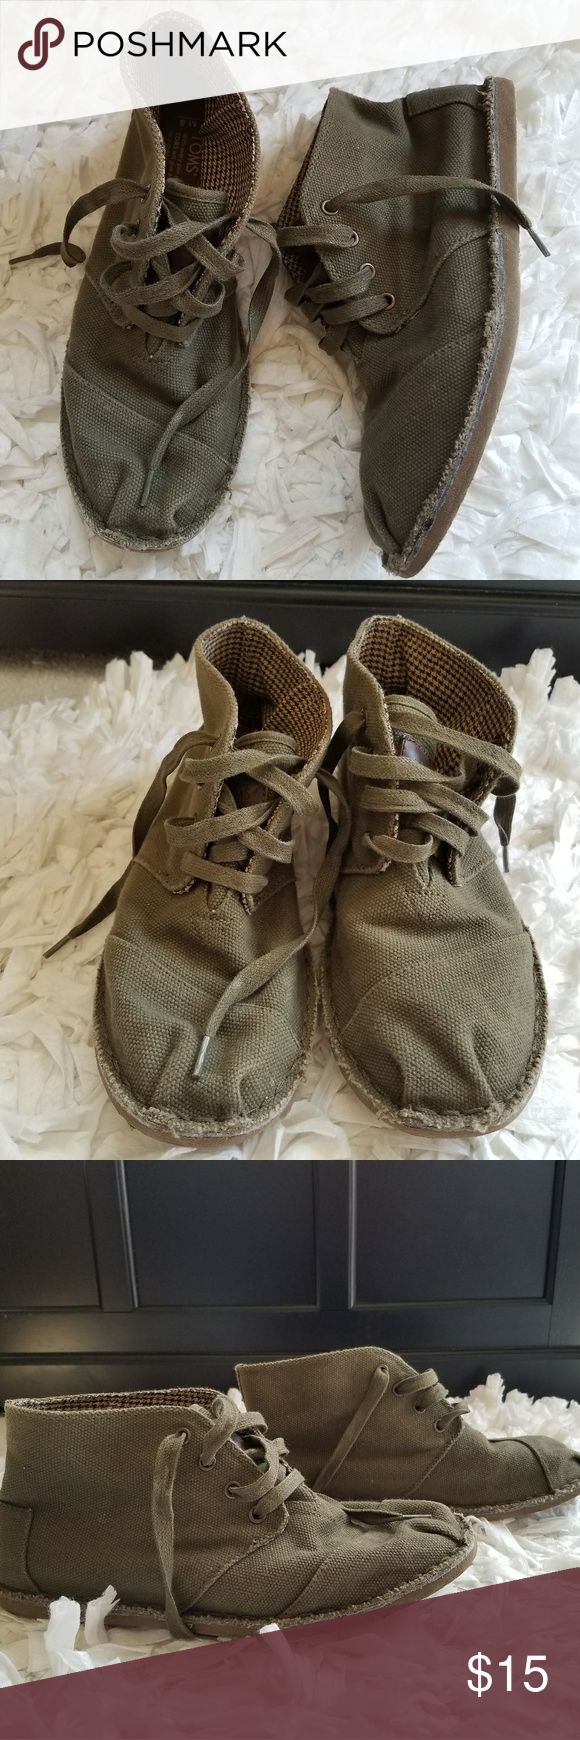 Men's TOMS Desert Botas Casual Canvas Toms  Size 8, men's  Olive Green In excellent condition, wear on the bottom as shown in photo. TOMS Shoes